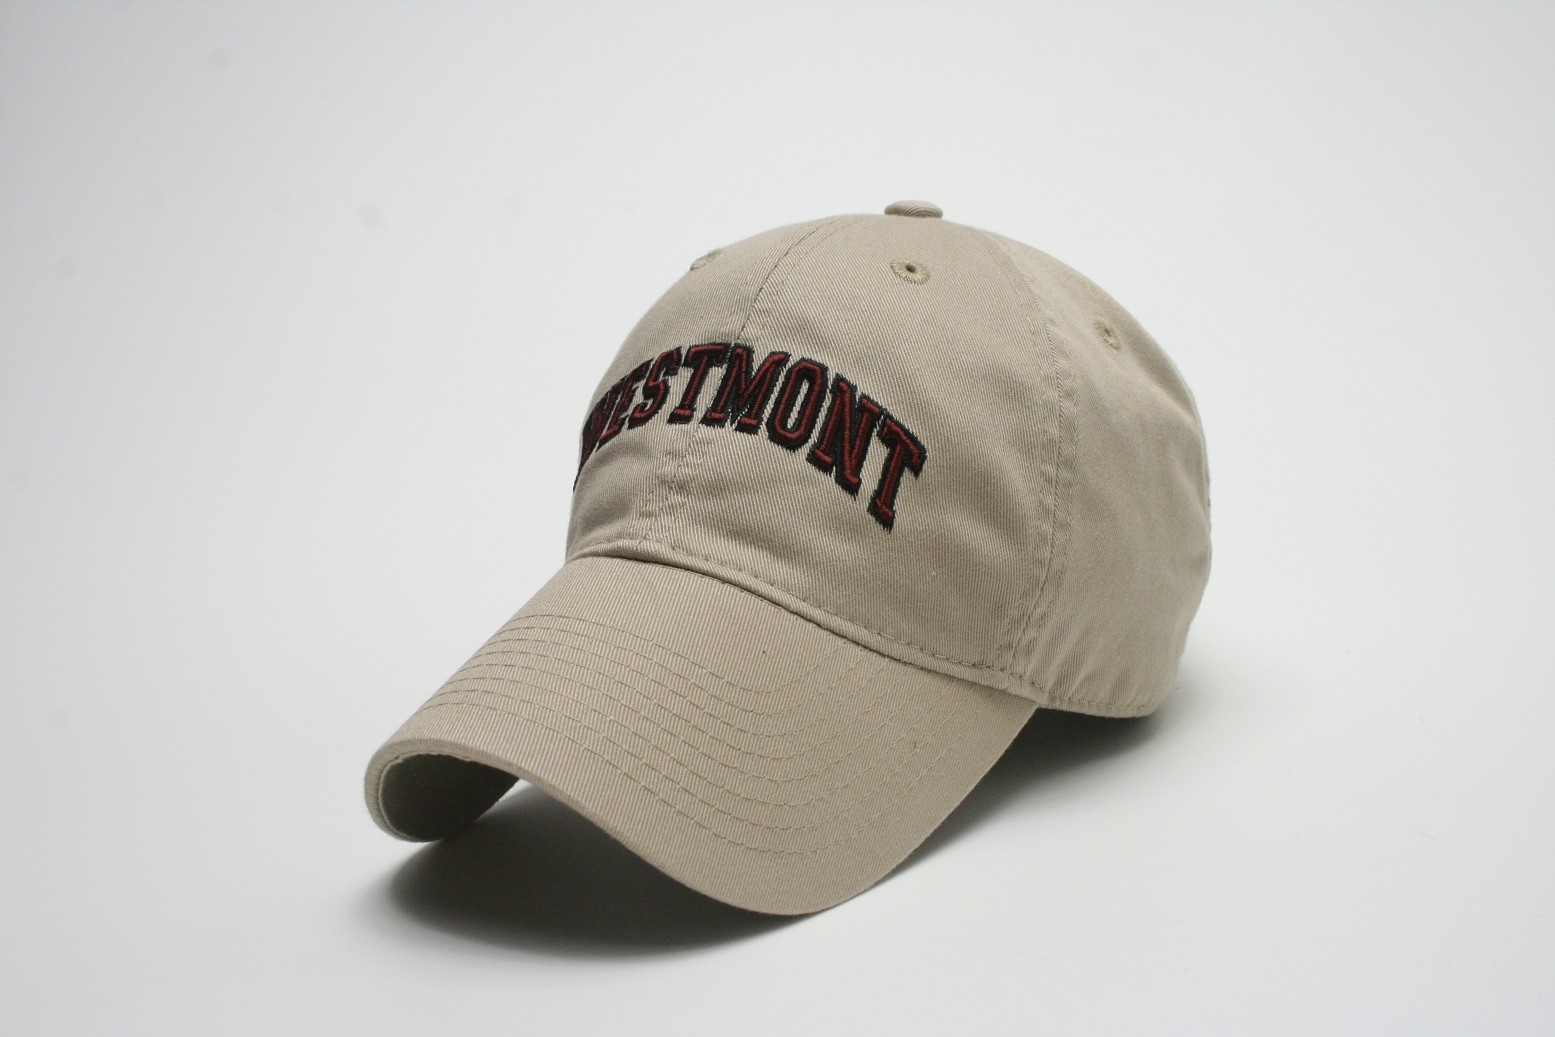 Image for the Legacy Westmont Hat - Khaki product